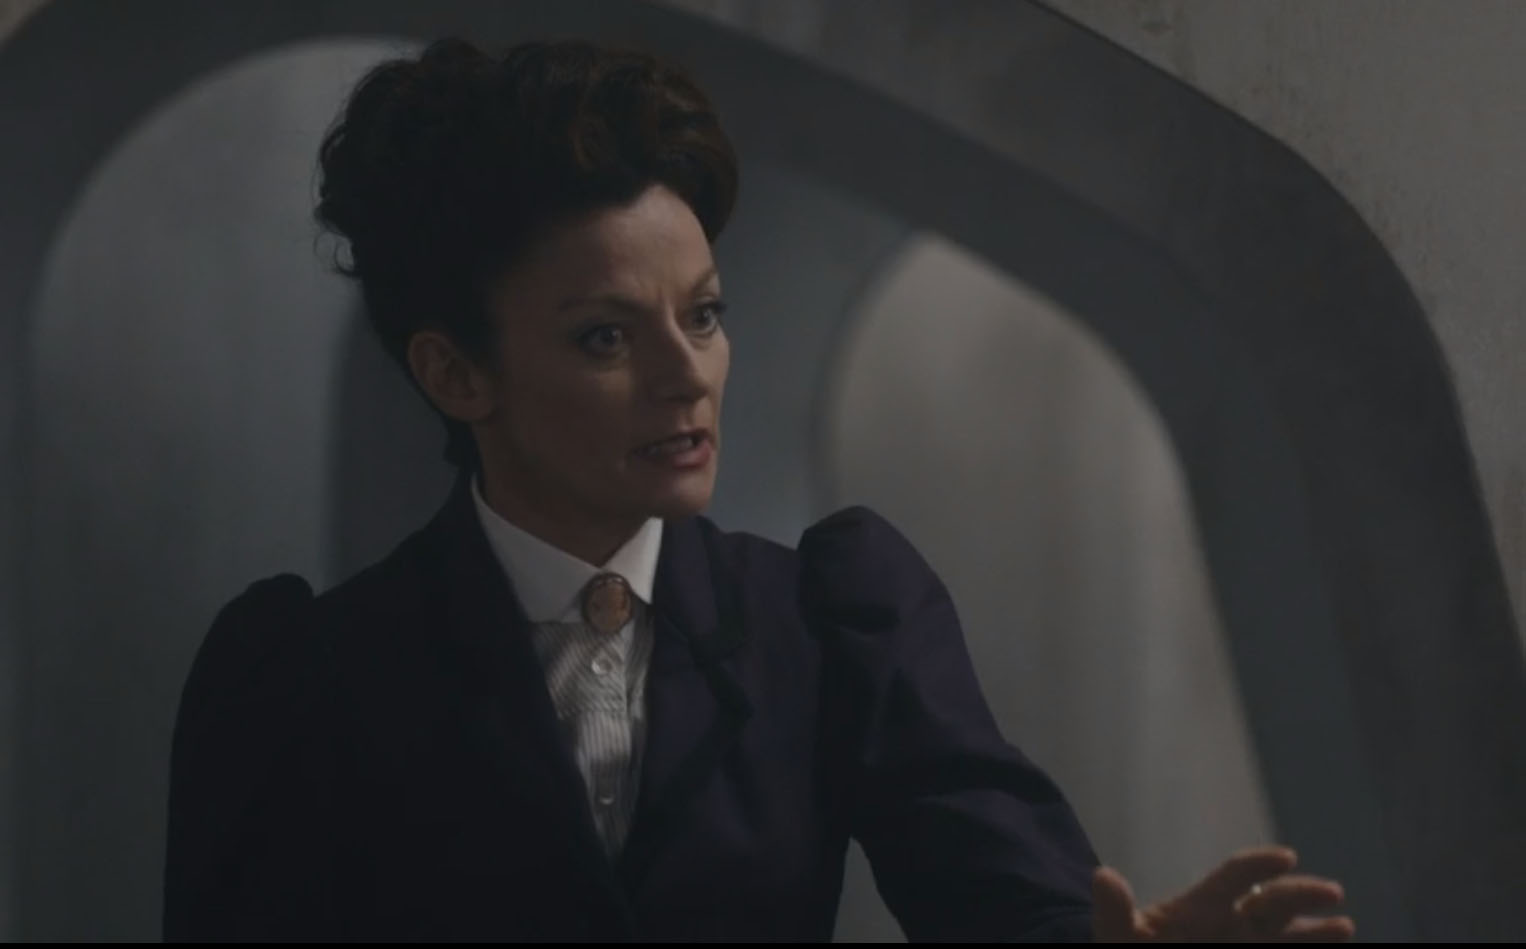 Missy/The Master as in The Witch's' Familiar